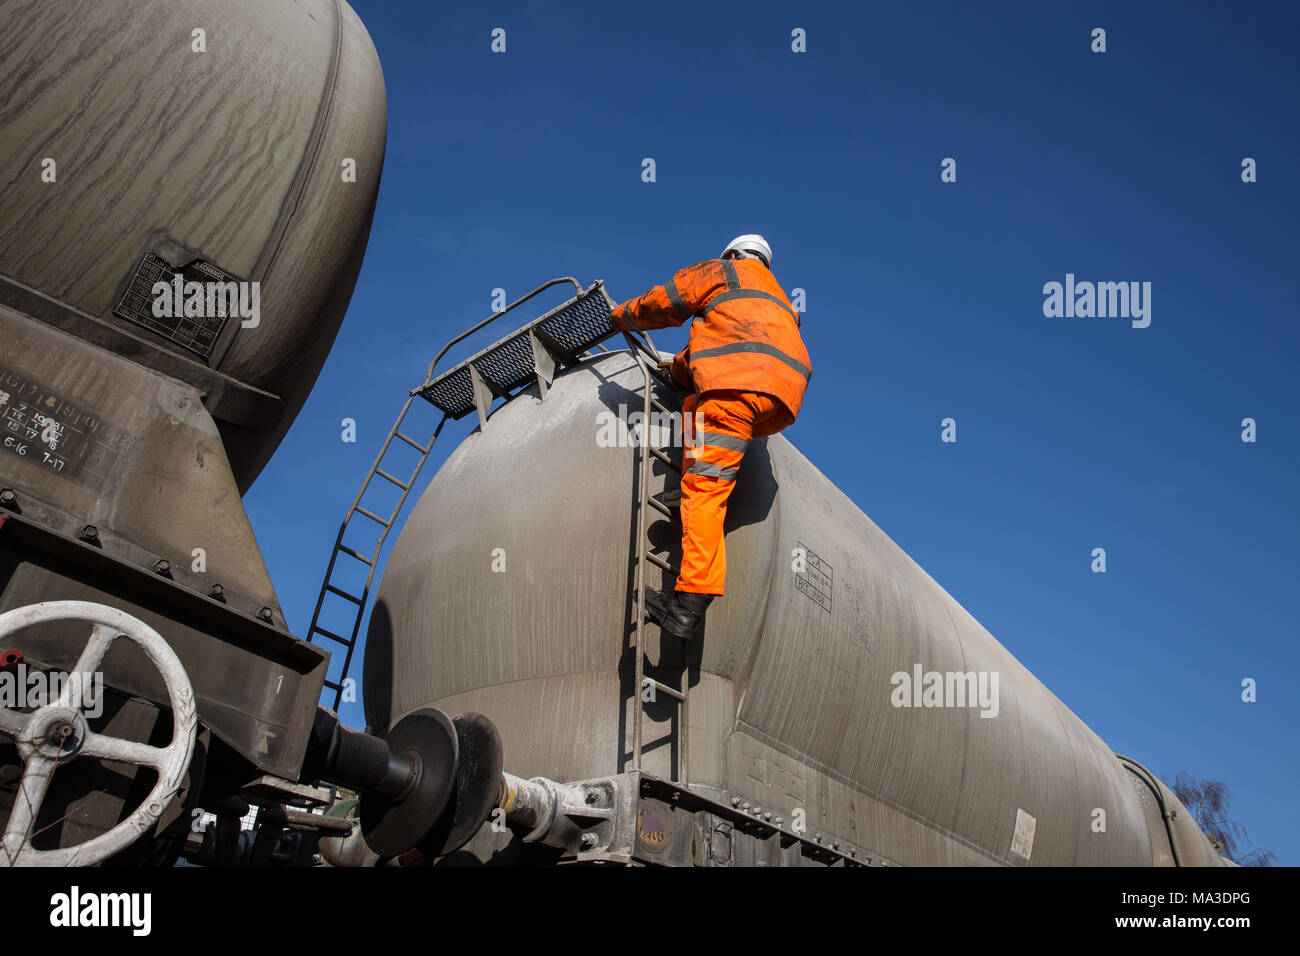 A railway maintenance worker wearing hi viz clothing climbing a ladder onto a rail tanker to inspect the upper deck whilst working at height. Stock Photo